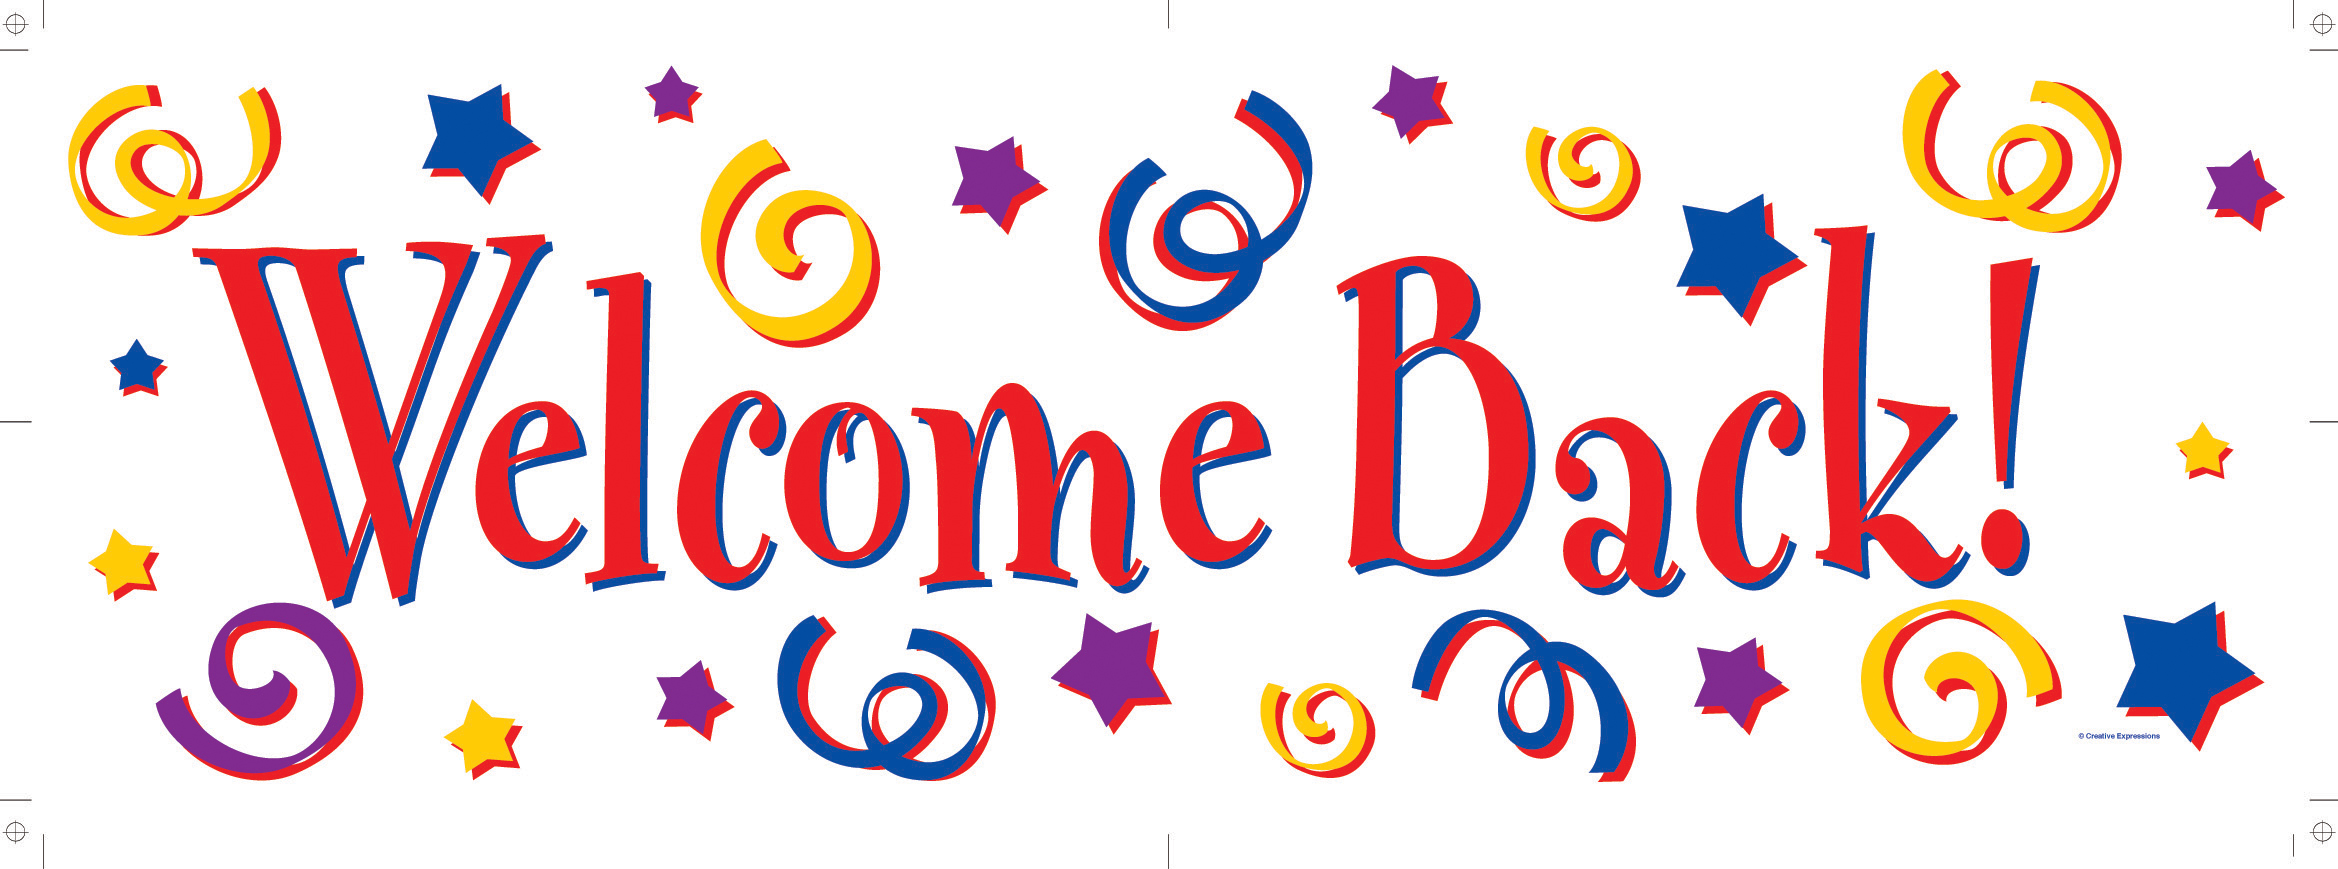 Welcome Back To Work Clipart Galleries R-Welcome Back To Work Clipart Galleries Related Welcome Back-15